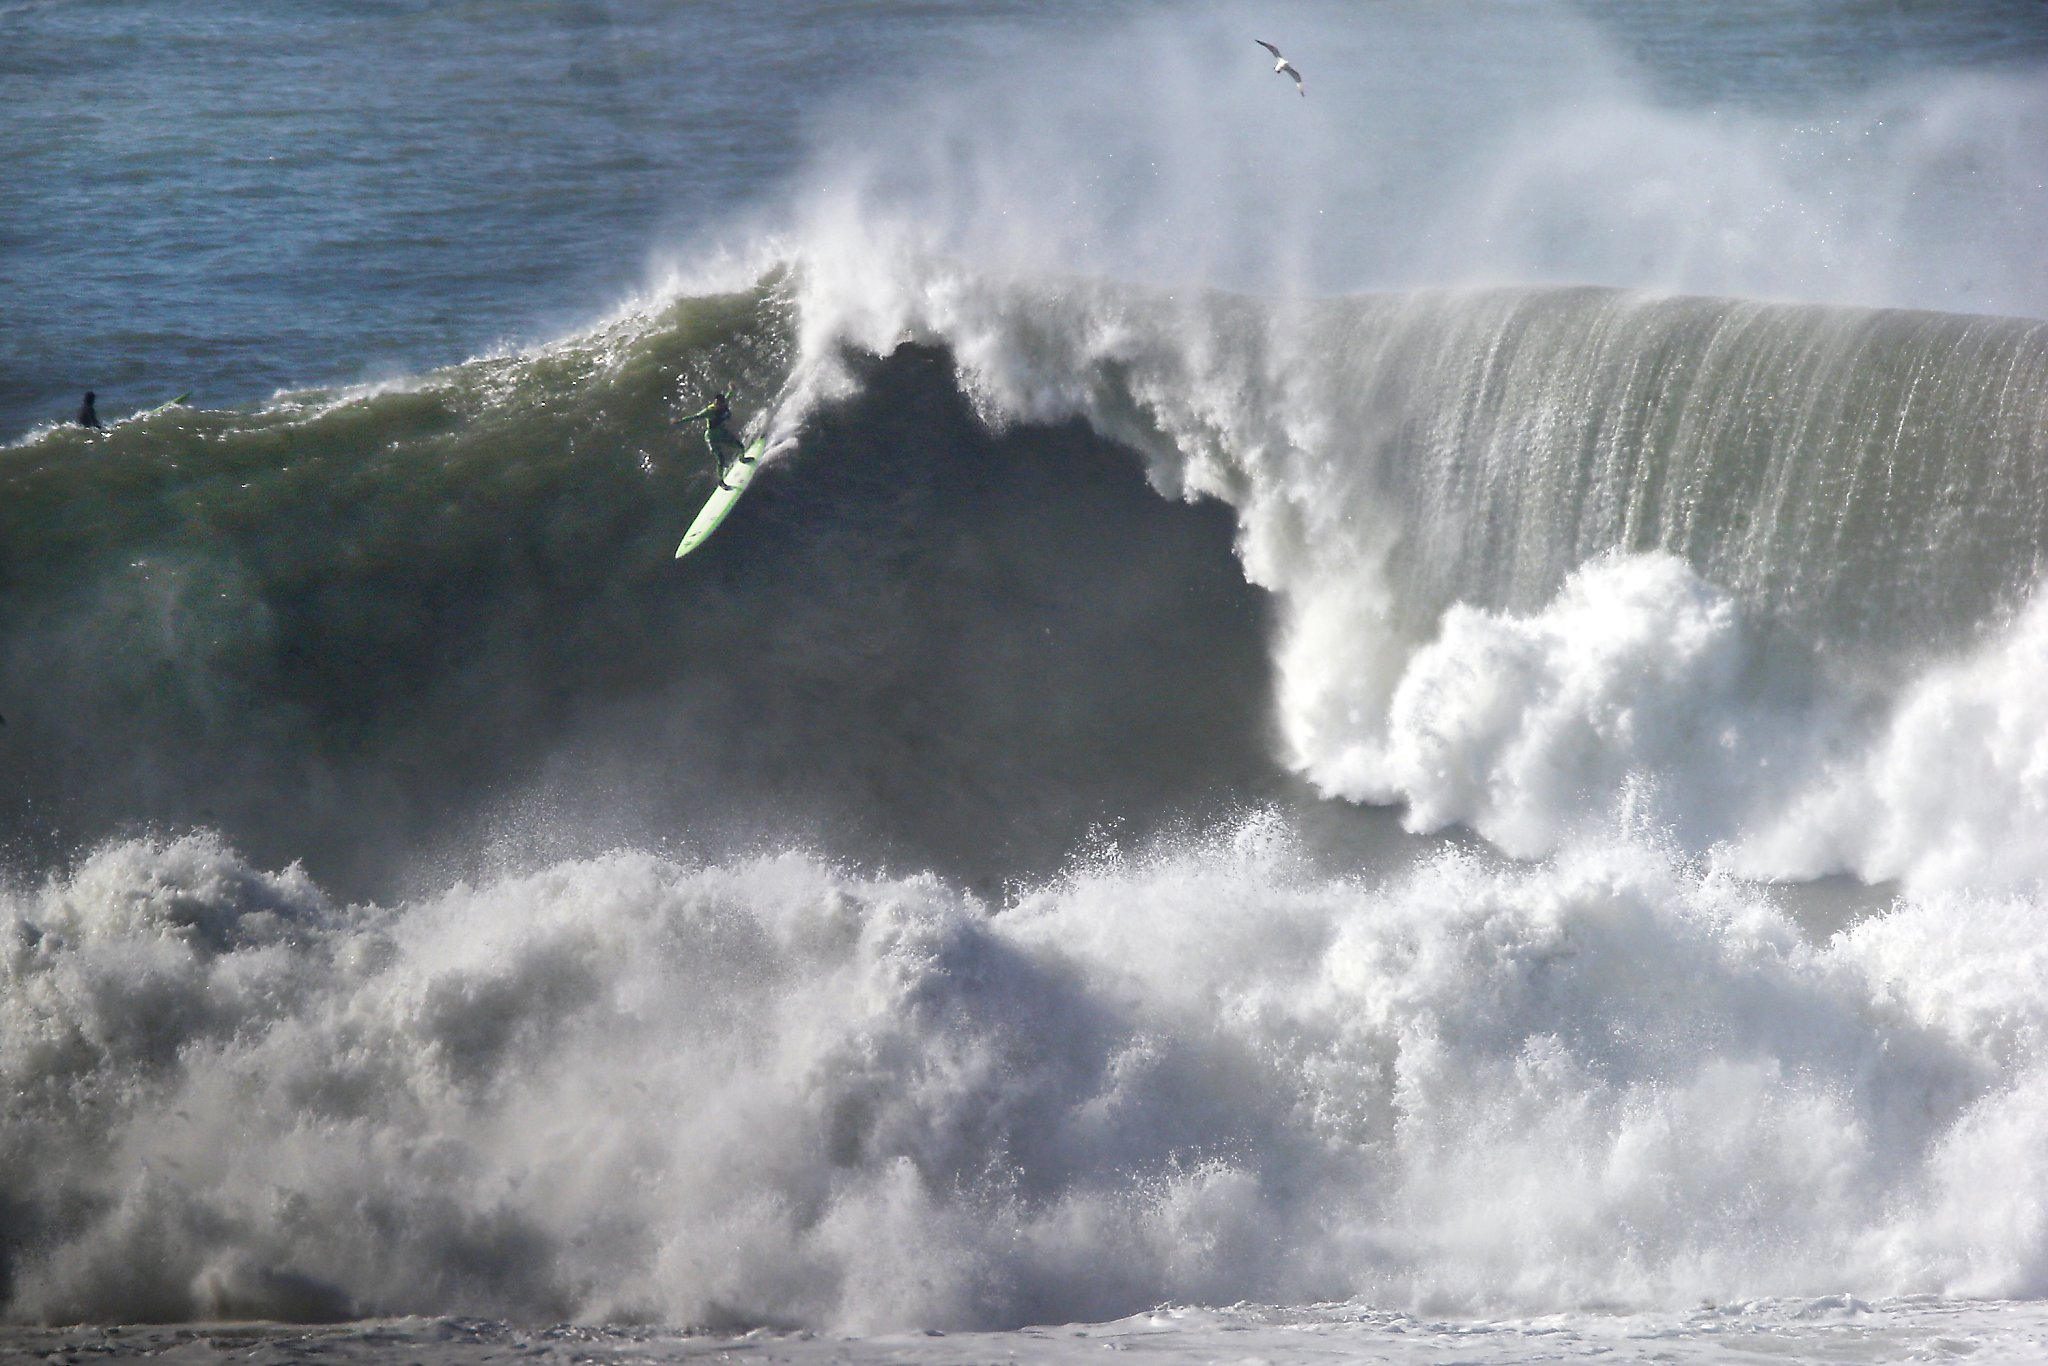 Ebay Local Classifieds >> Surfer hurt in wipeout at Mavericks as waves hit 50 feet - SFGate